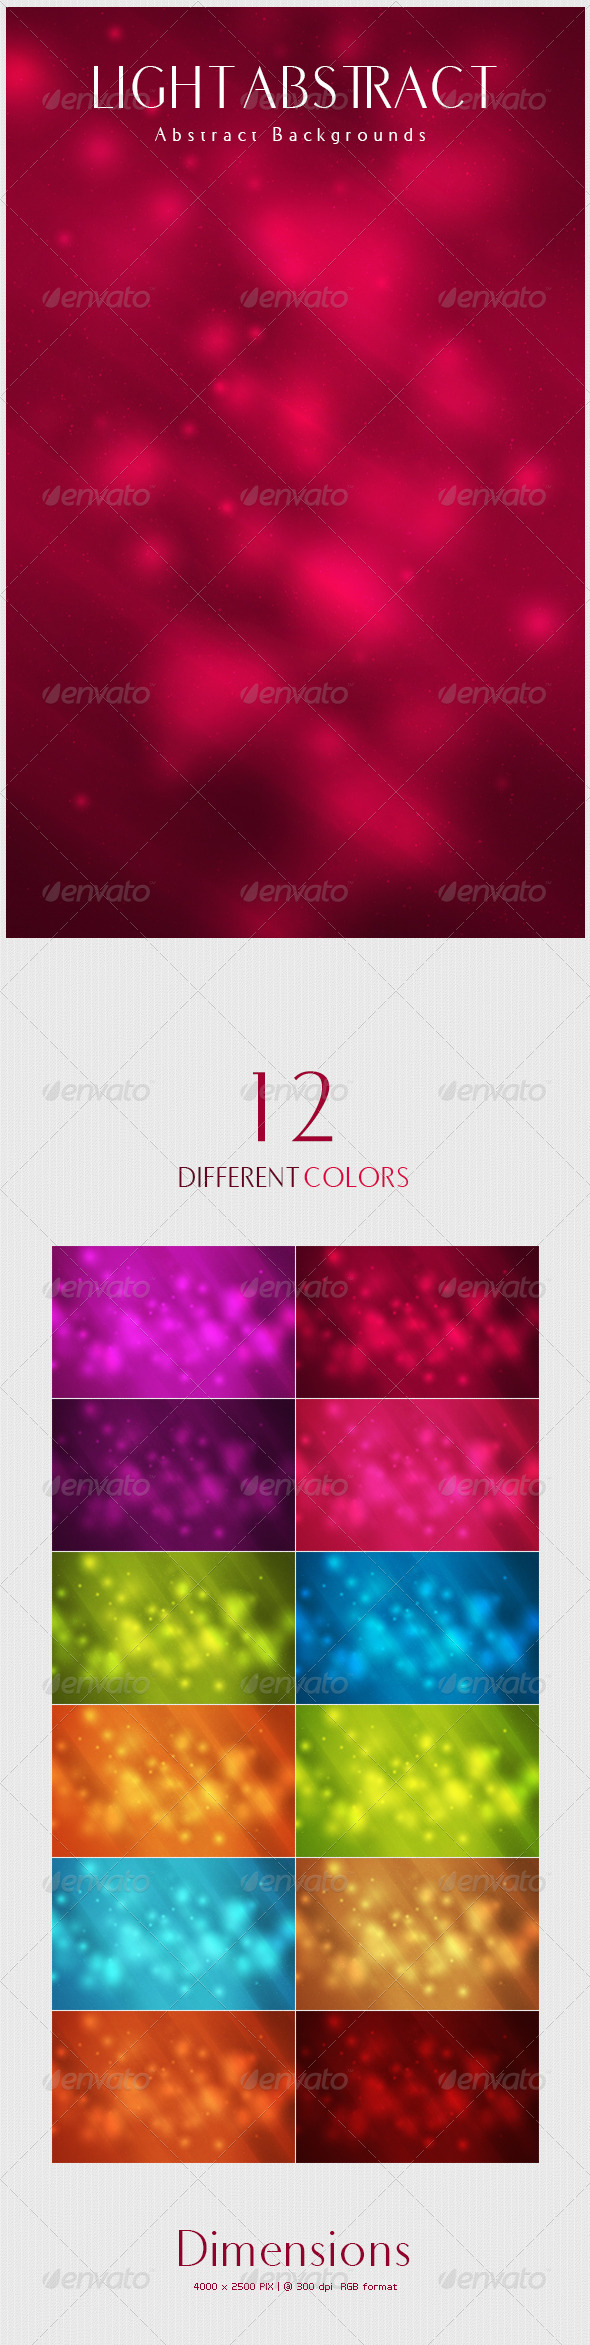 GraphicRiver Light Abstract Backgrounds 4843872